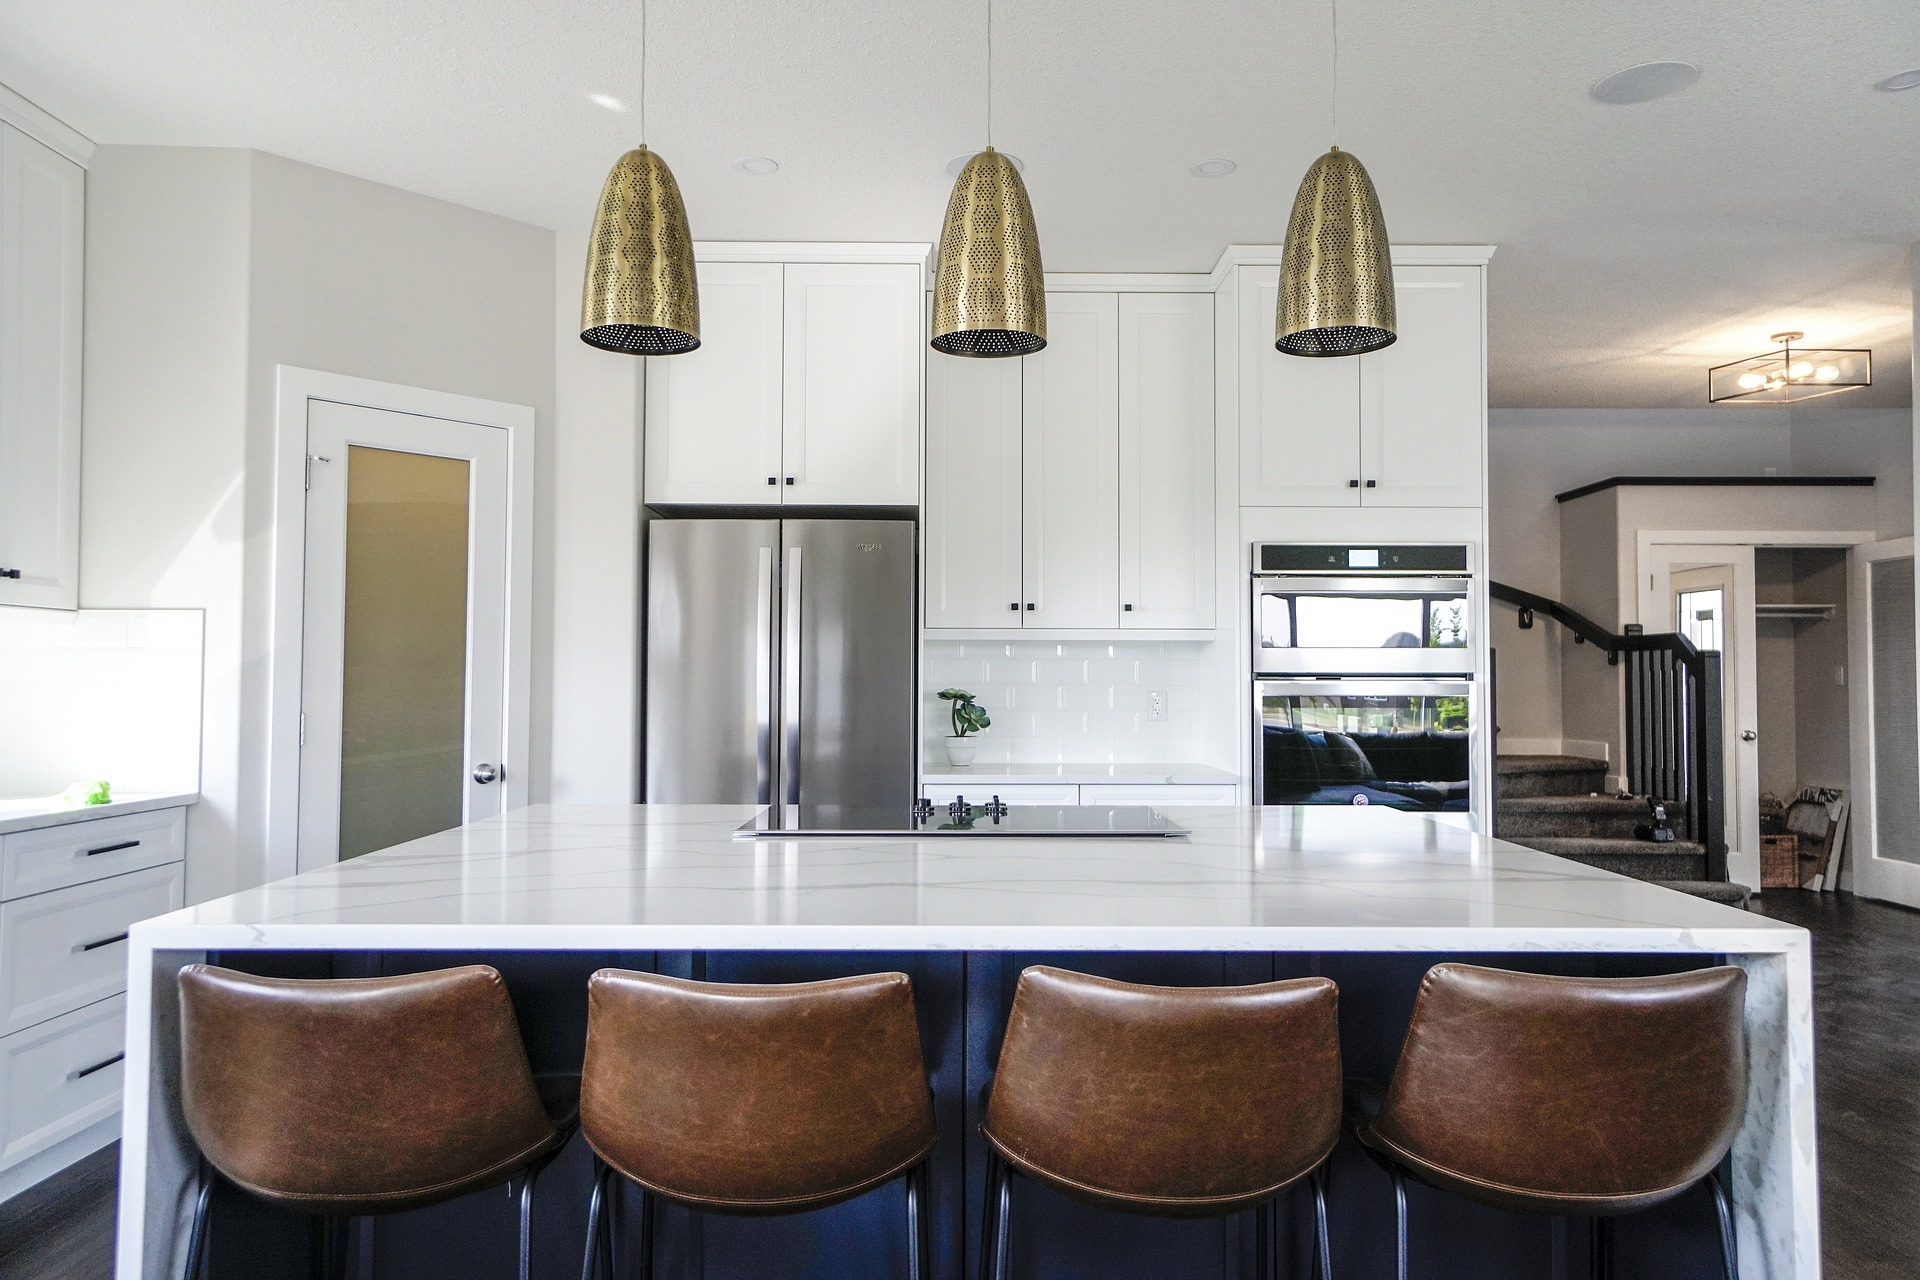 Why do people use white marble countertops?